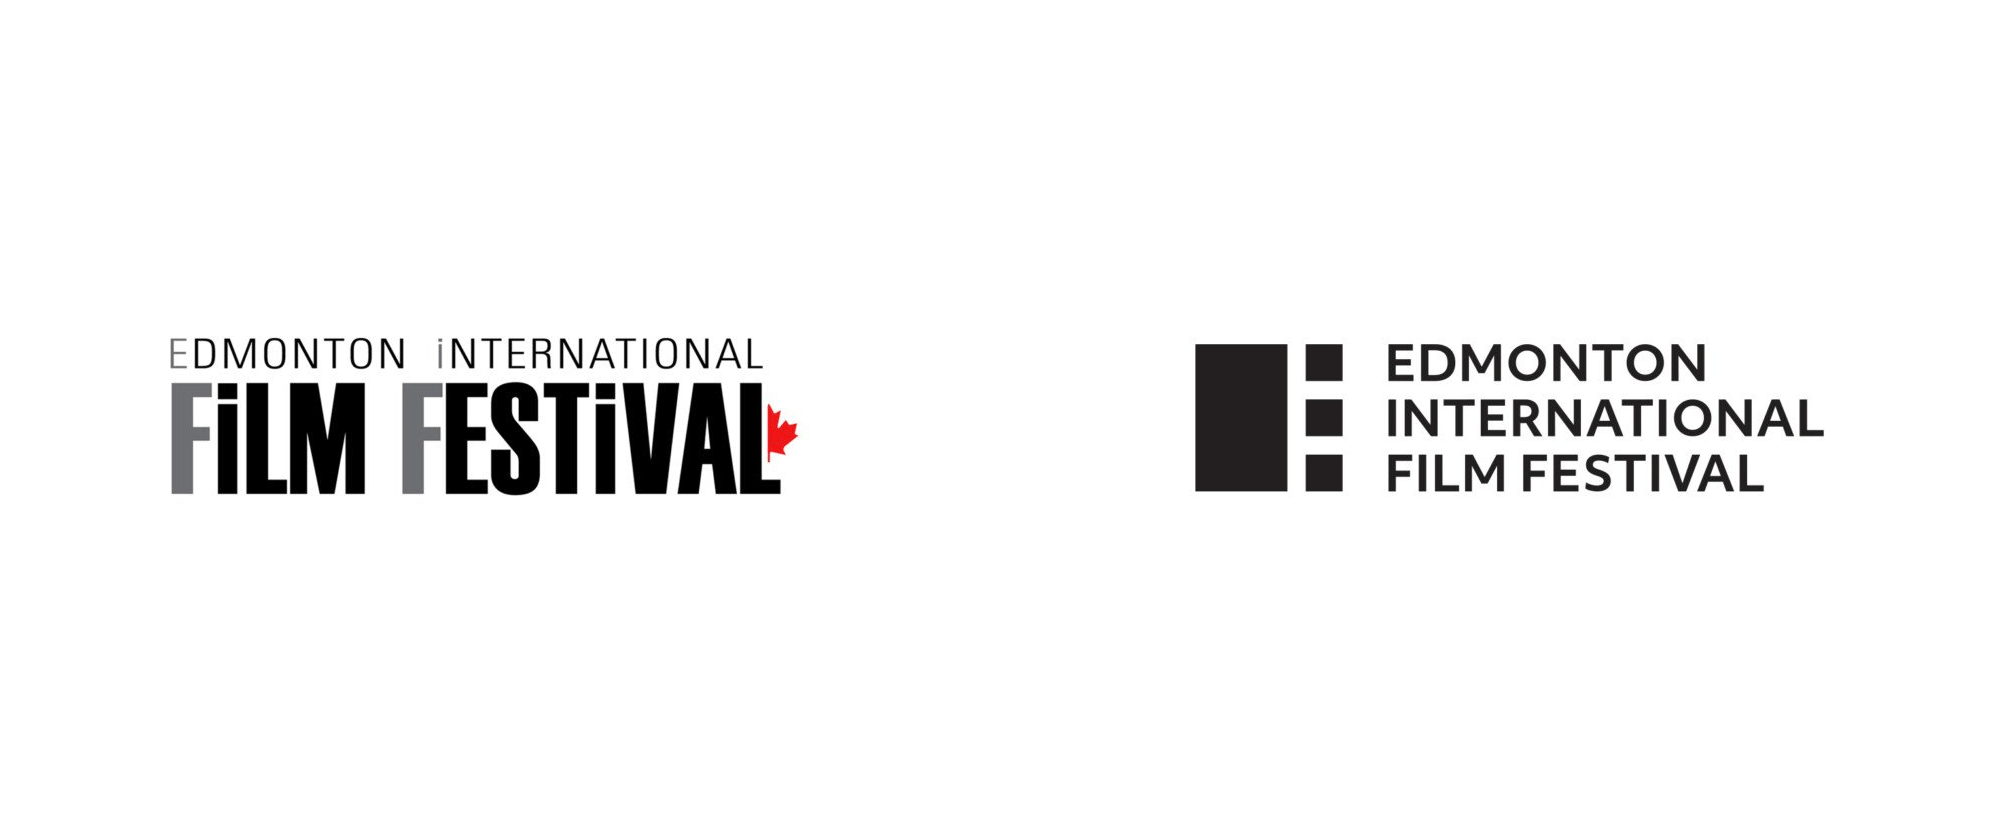 New Logo and Identity for Edmonton International Film Festival by FKA